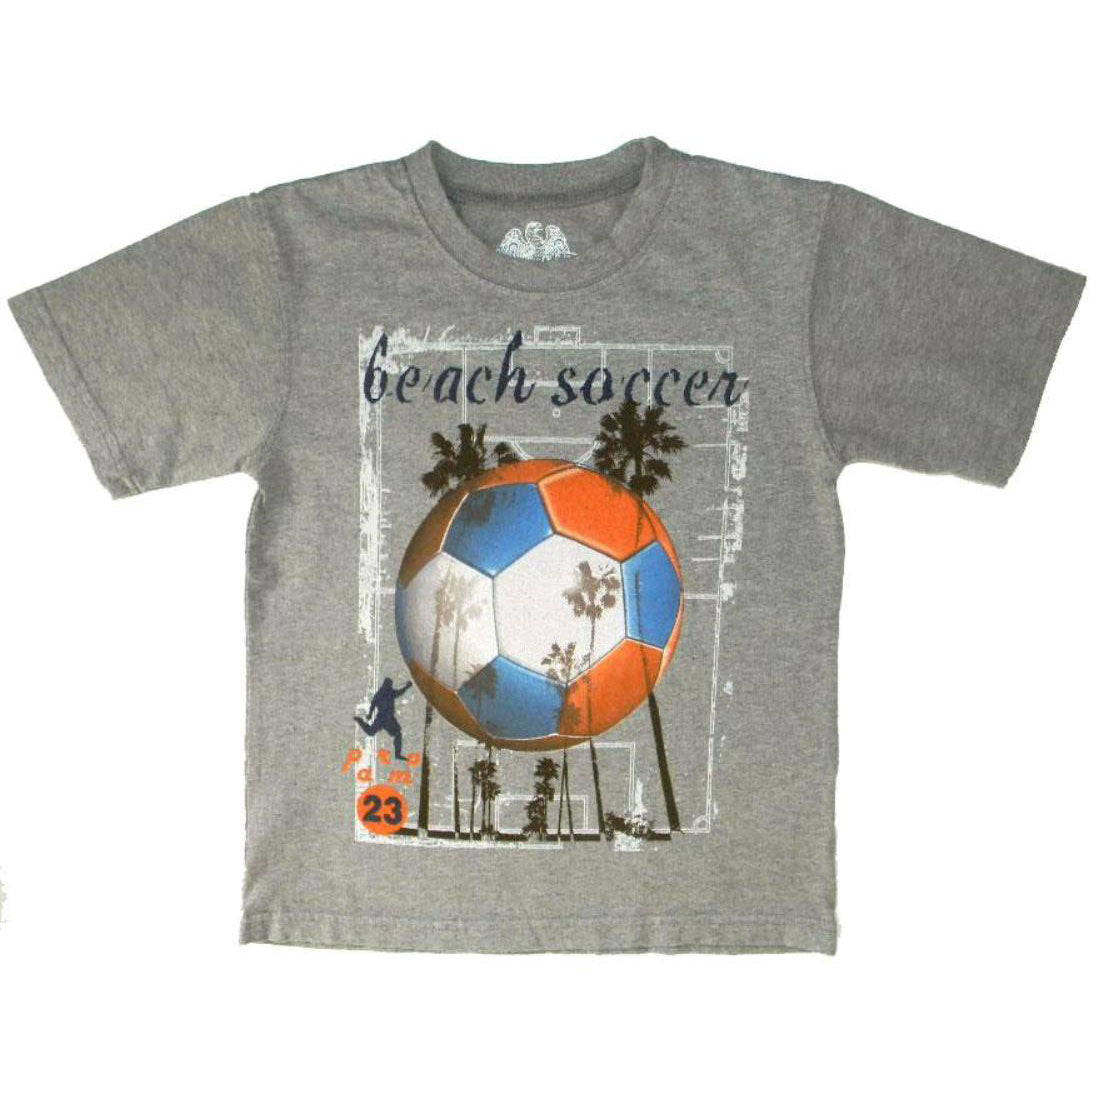 Boys Beach Soccer Shirt by Wes and Willy